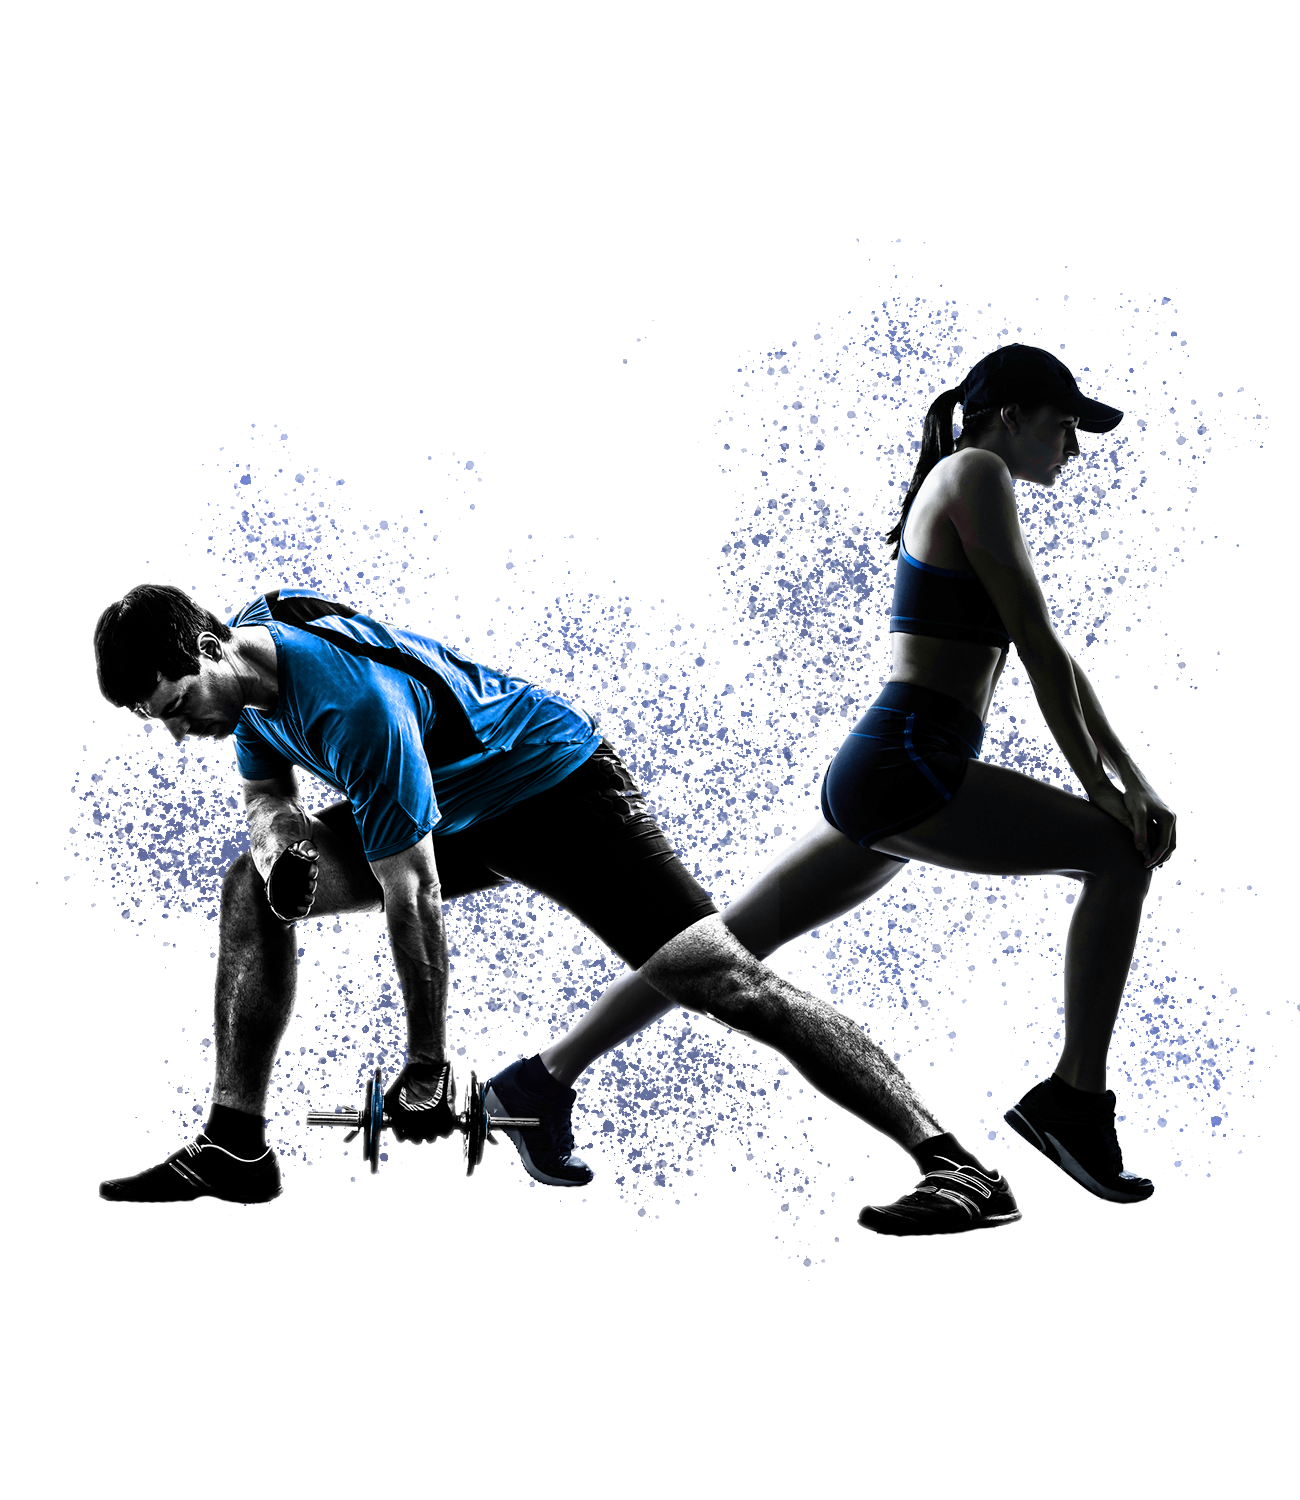 Fitness png. Adult corexcell adultfitness cx